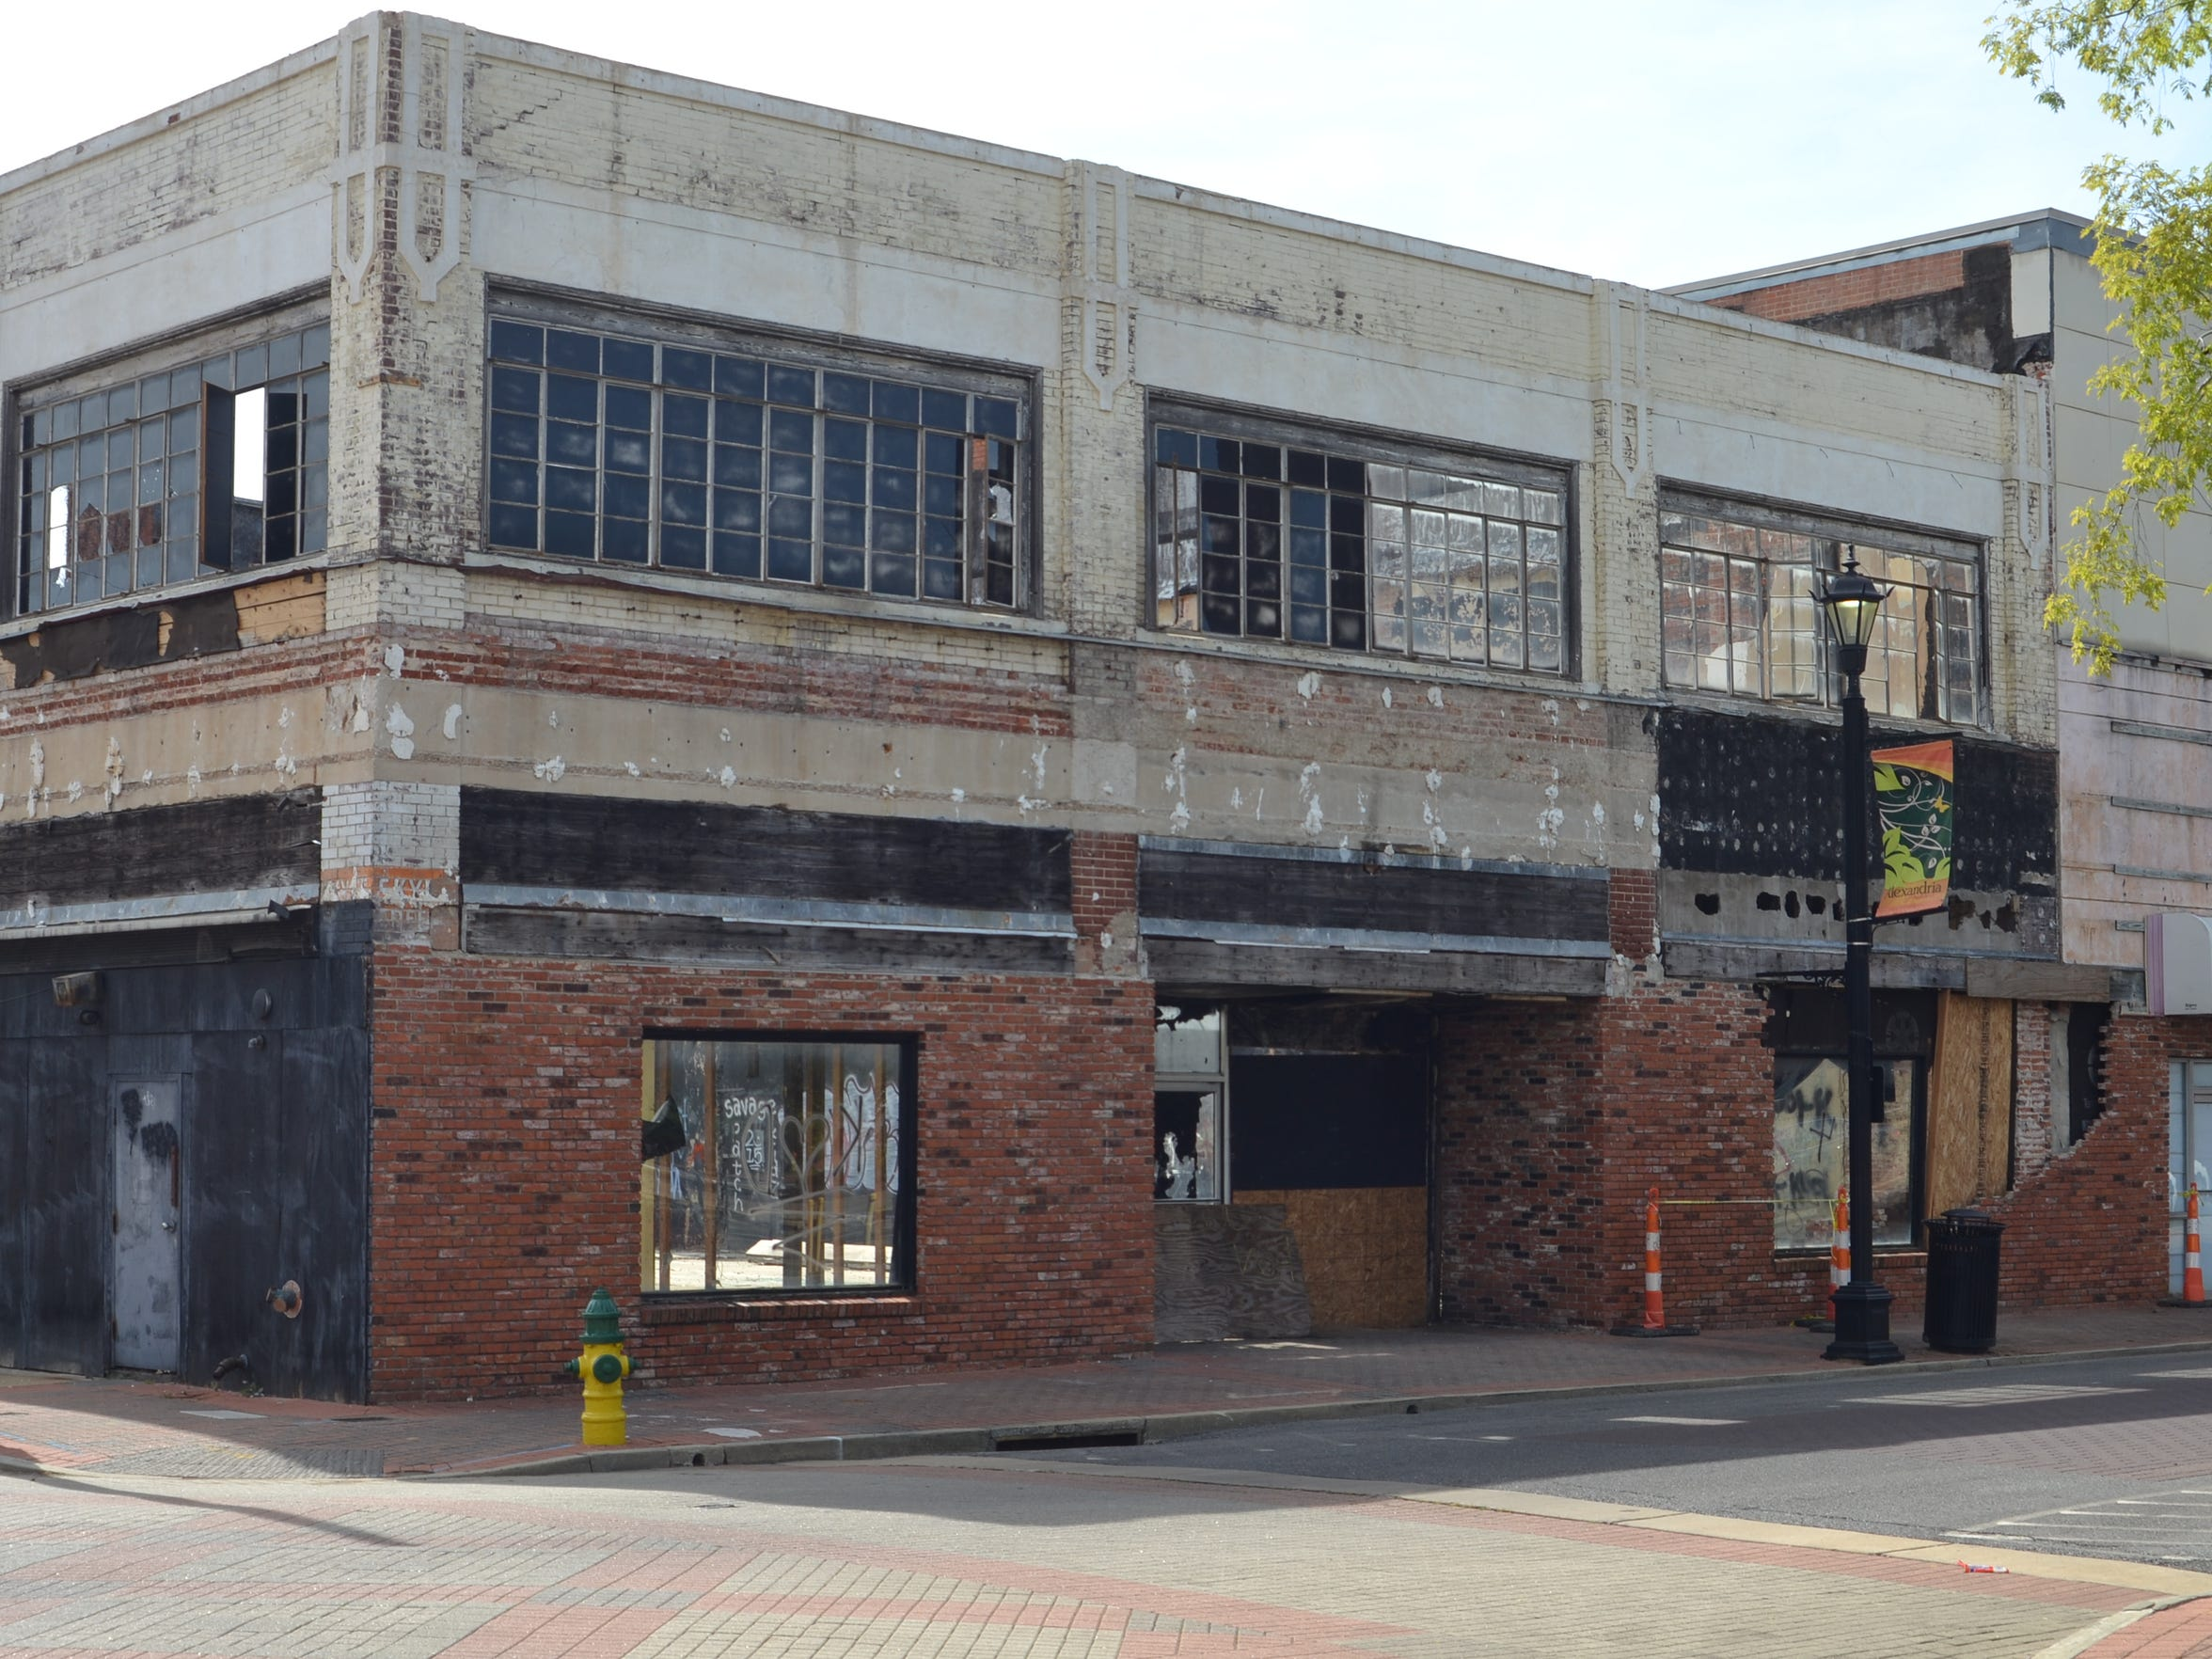 Years of neglect have left the Skye Building, one of Alexandria's historically busiest commercial buildings, in peril.